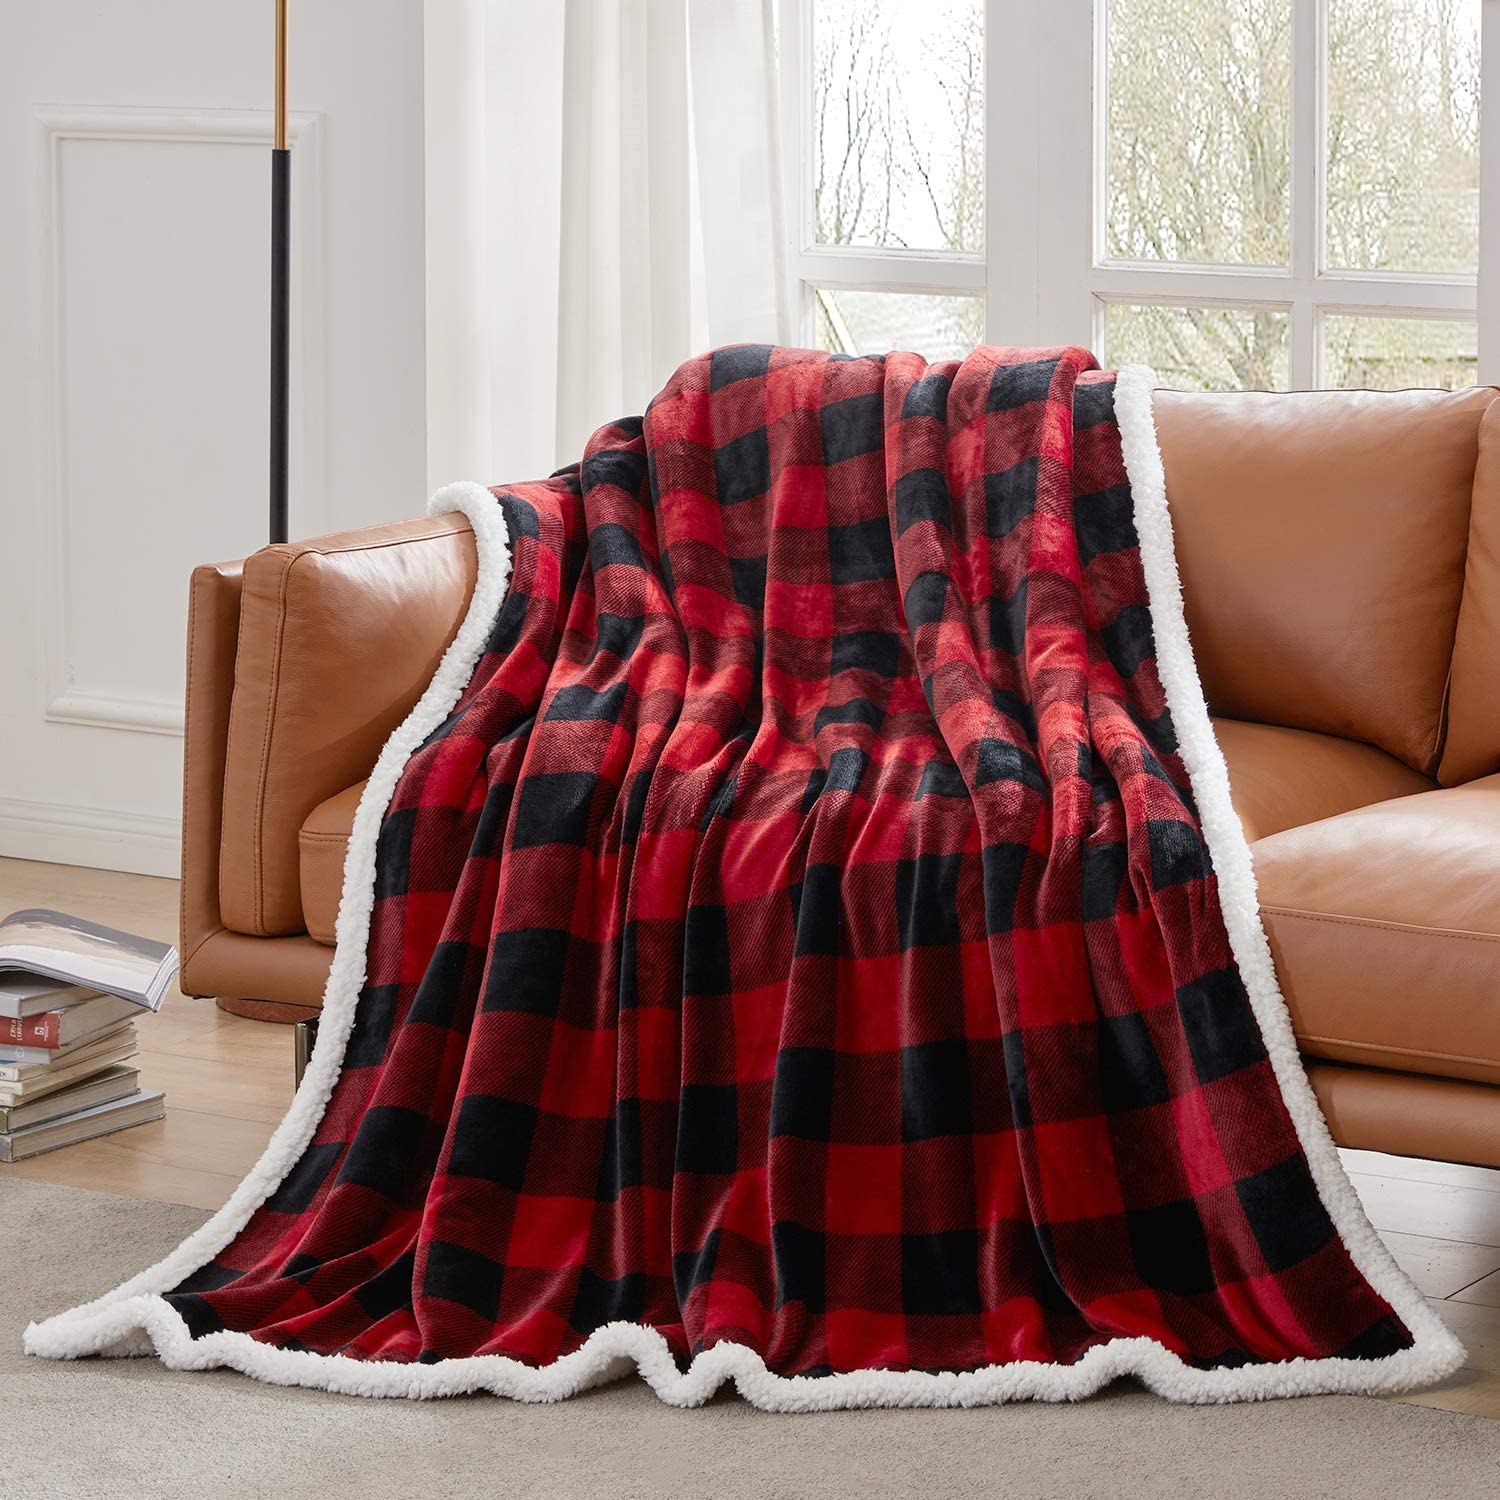 """Touchat Sherpa Red and Black Buffalo Plaid Christmas Throw Blanket, Fuzzy Fluffy Soft Cozy Blanket, Fleece Flannel Plush Microfiber Blanket for Couch Bed Sofa (60"""" X 70""""): Kitchen & Dining"""